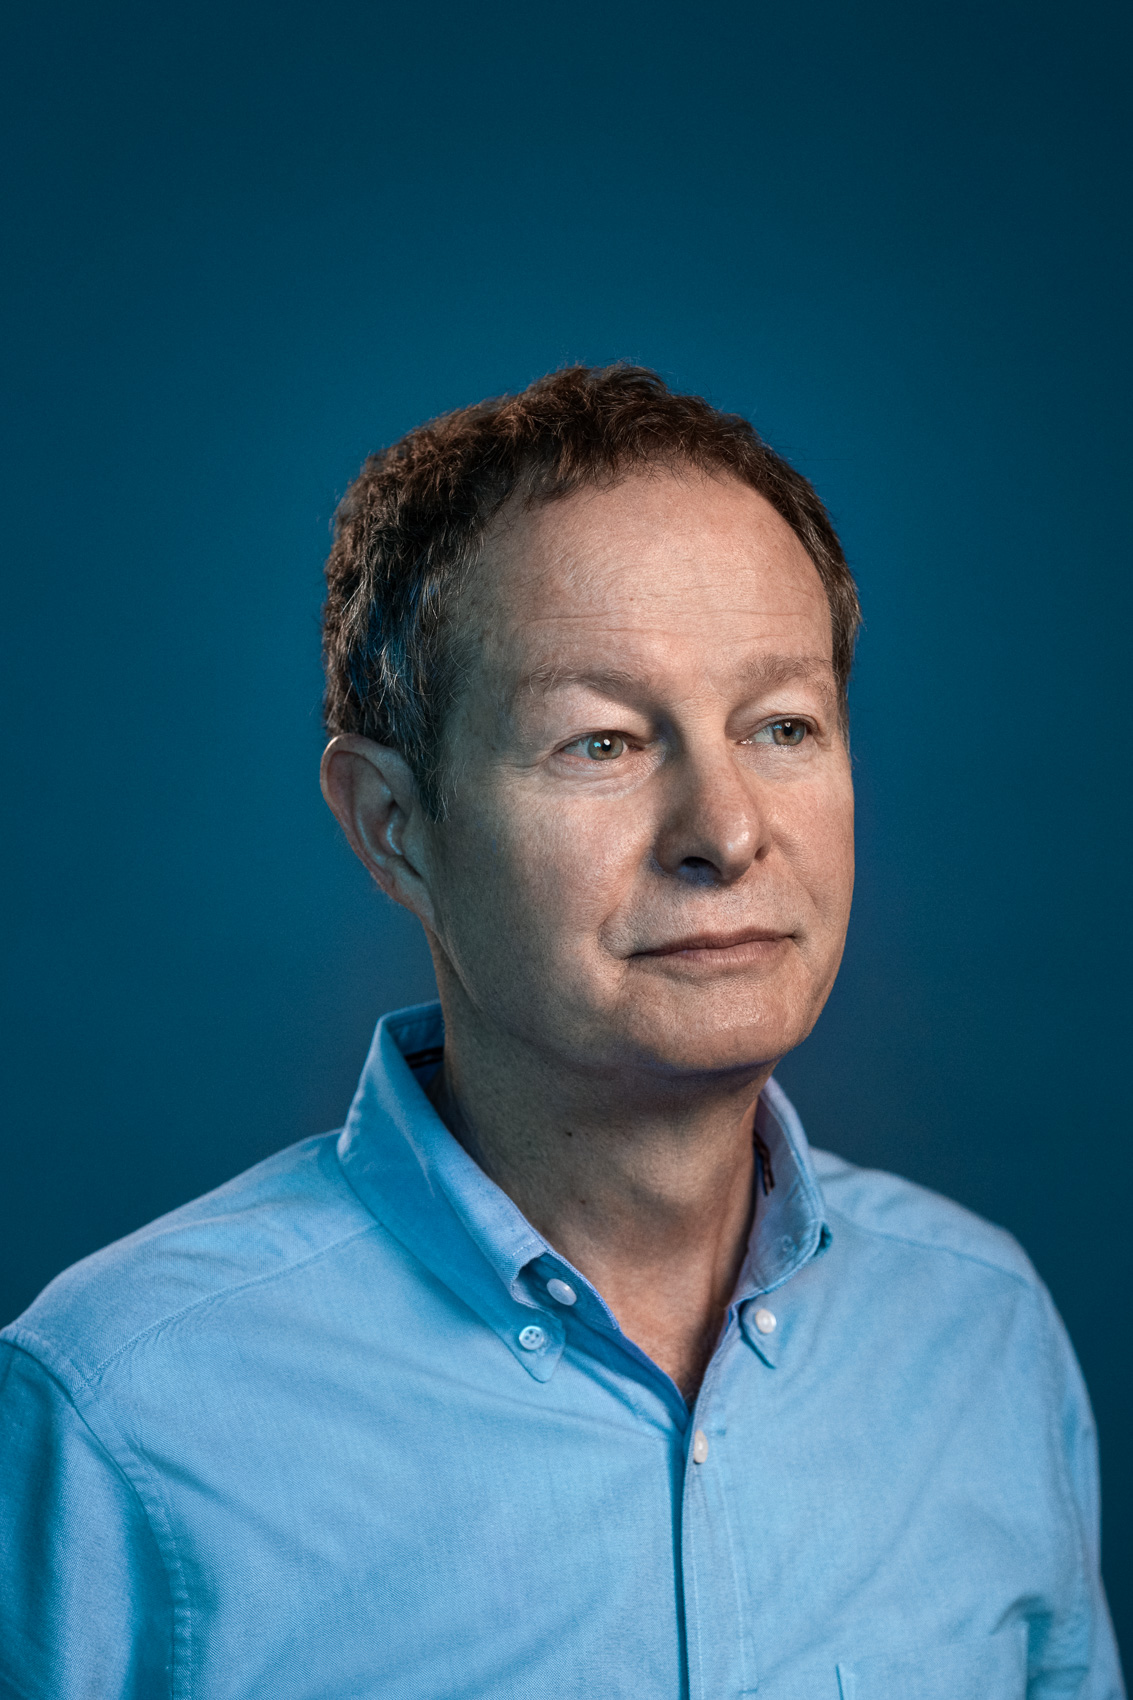 John Mackey CEO of Whole Foods